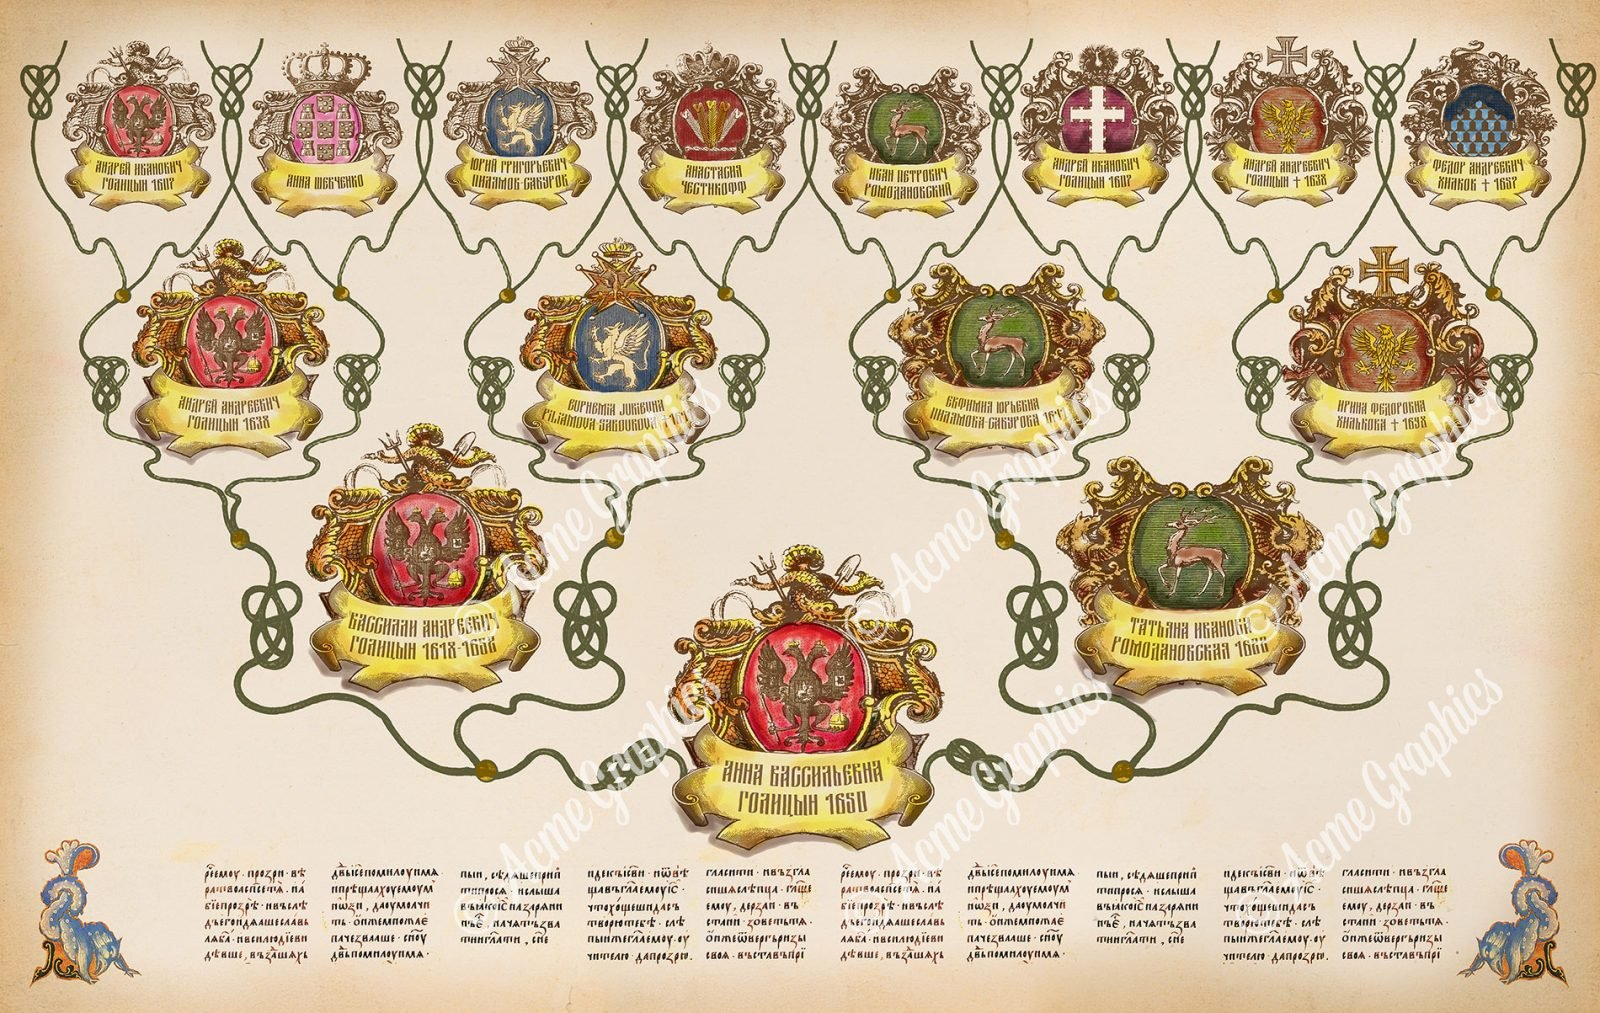 Catherine the great's family tree